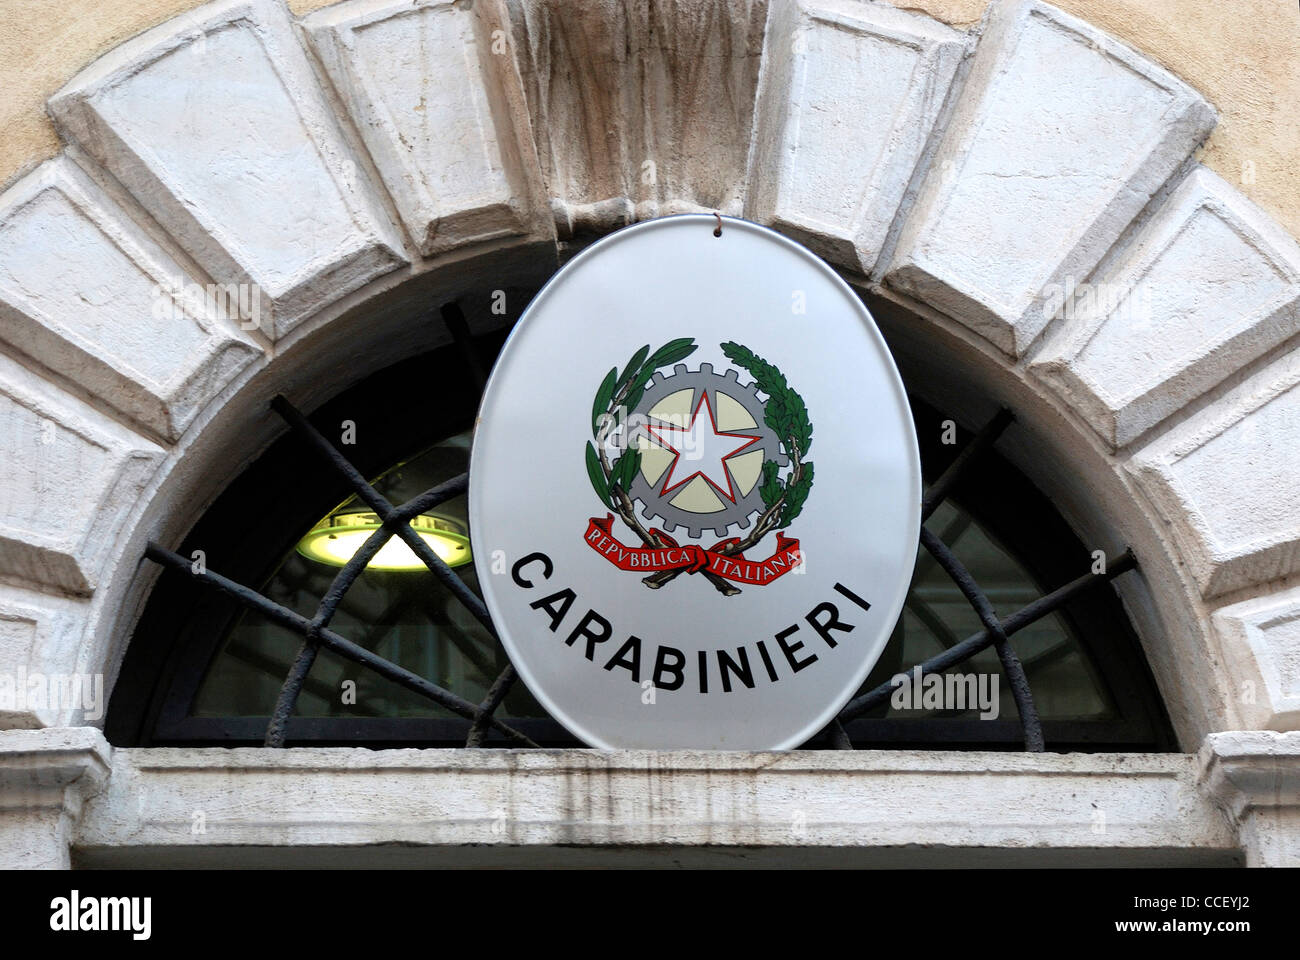 Emblem of the Carabinieri at a building of the Gendarmerie in the Italian capital Rome. - Stock Image